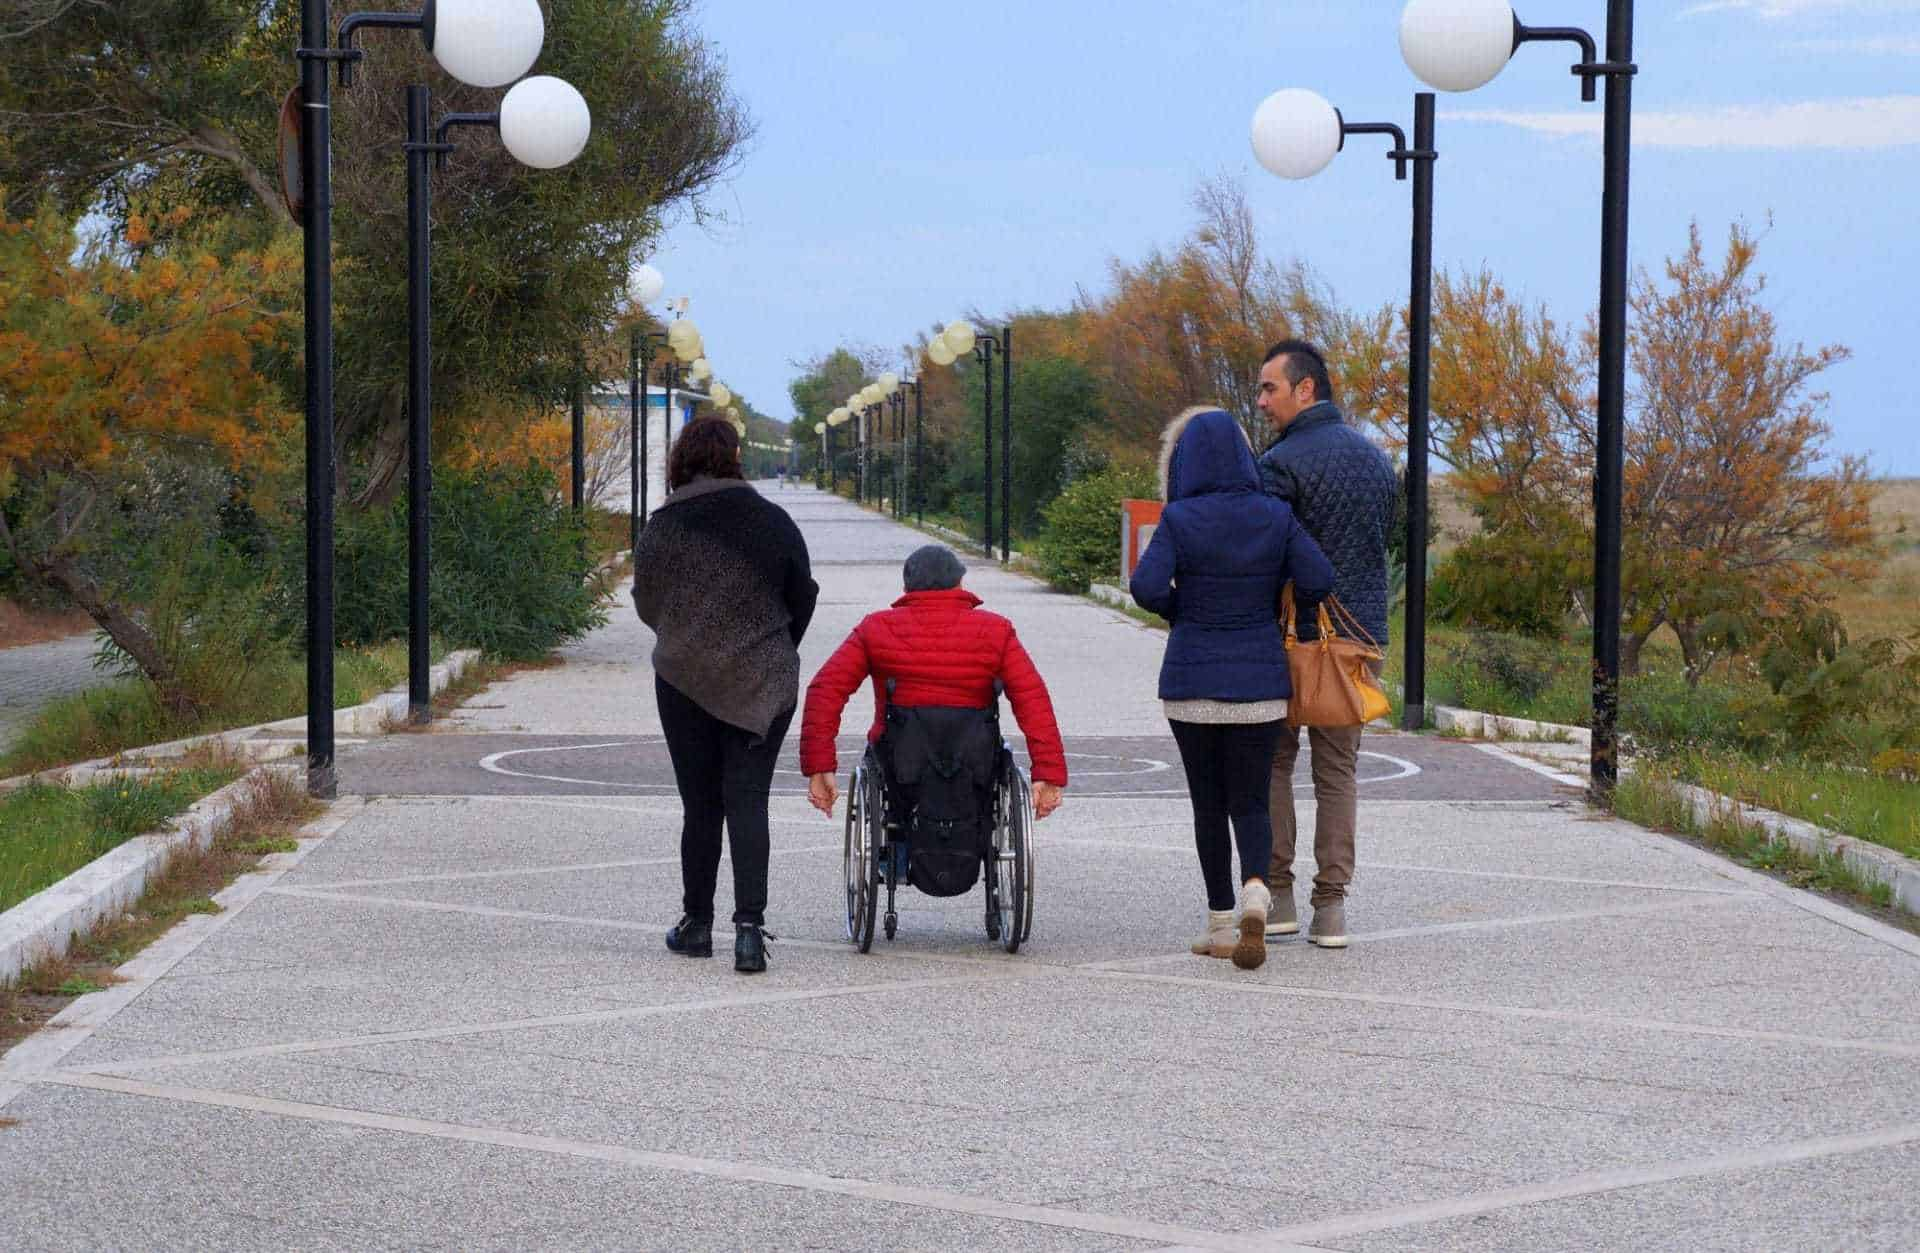 """Accessibilità in viaggio"": la Basilicata verso un turismo inclusivo e accessibile"